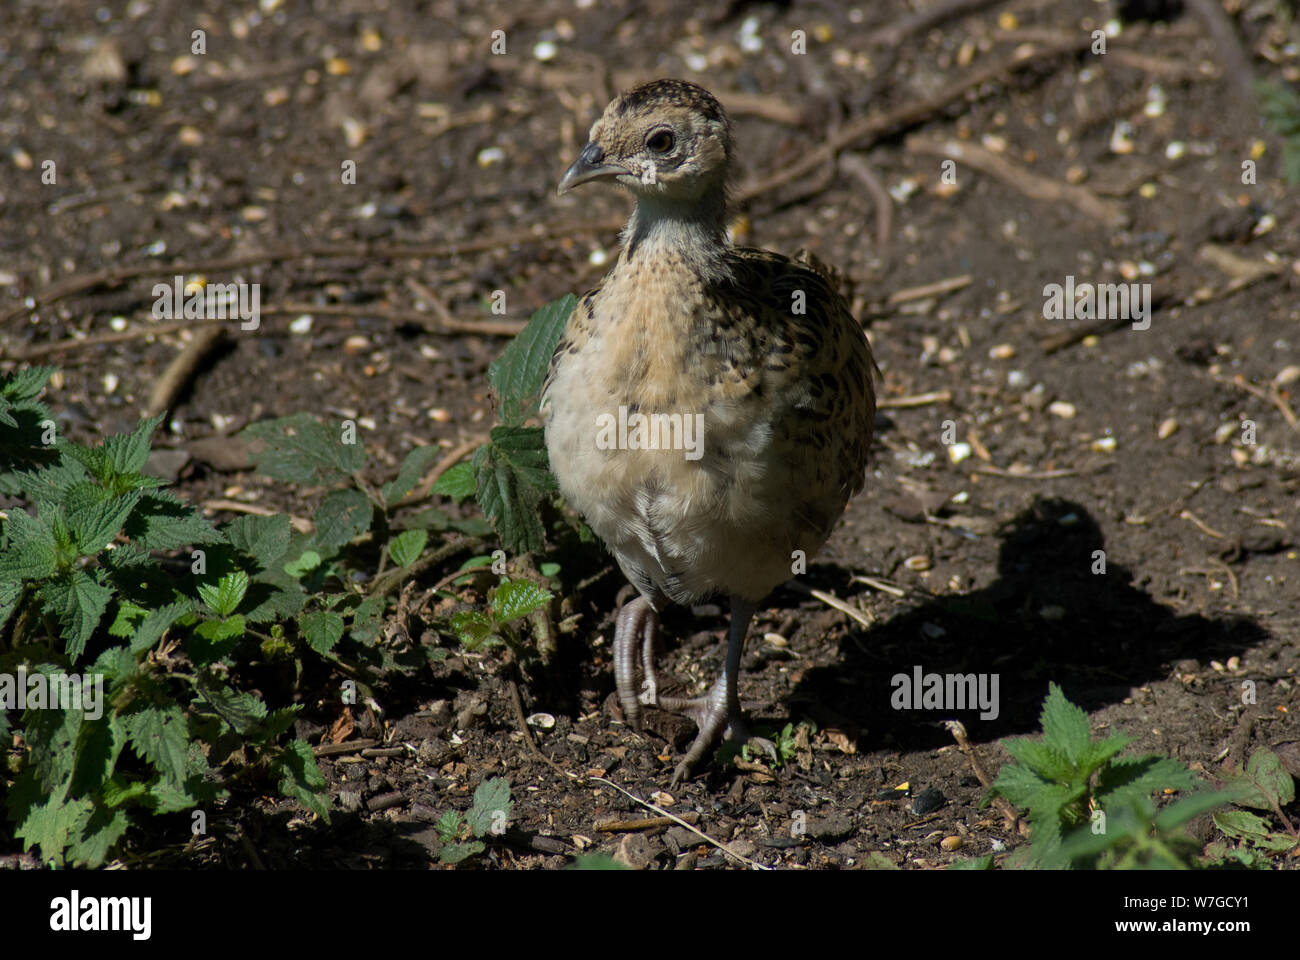 Pheasant chick in close up on the ground with one foot raised as it searches for food Stock Photo